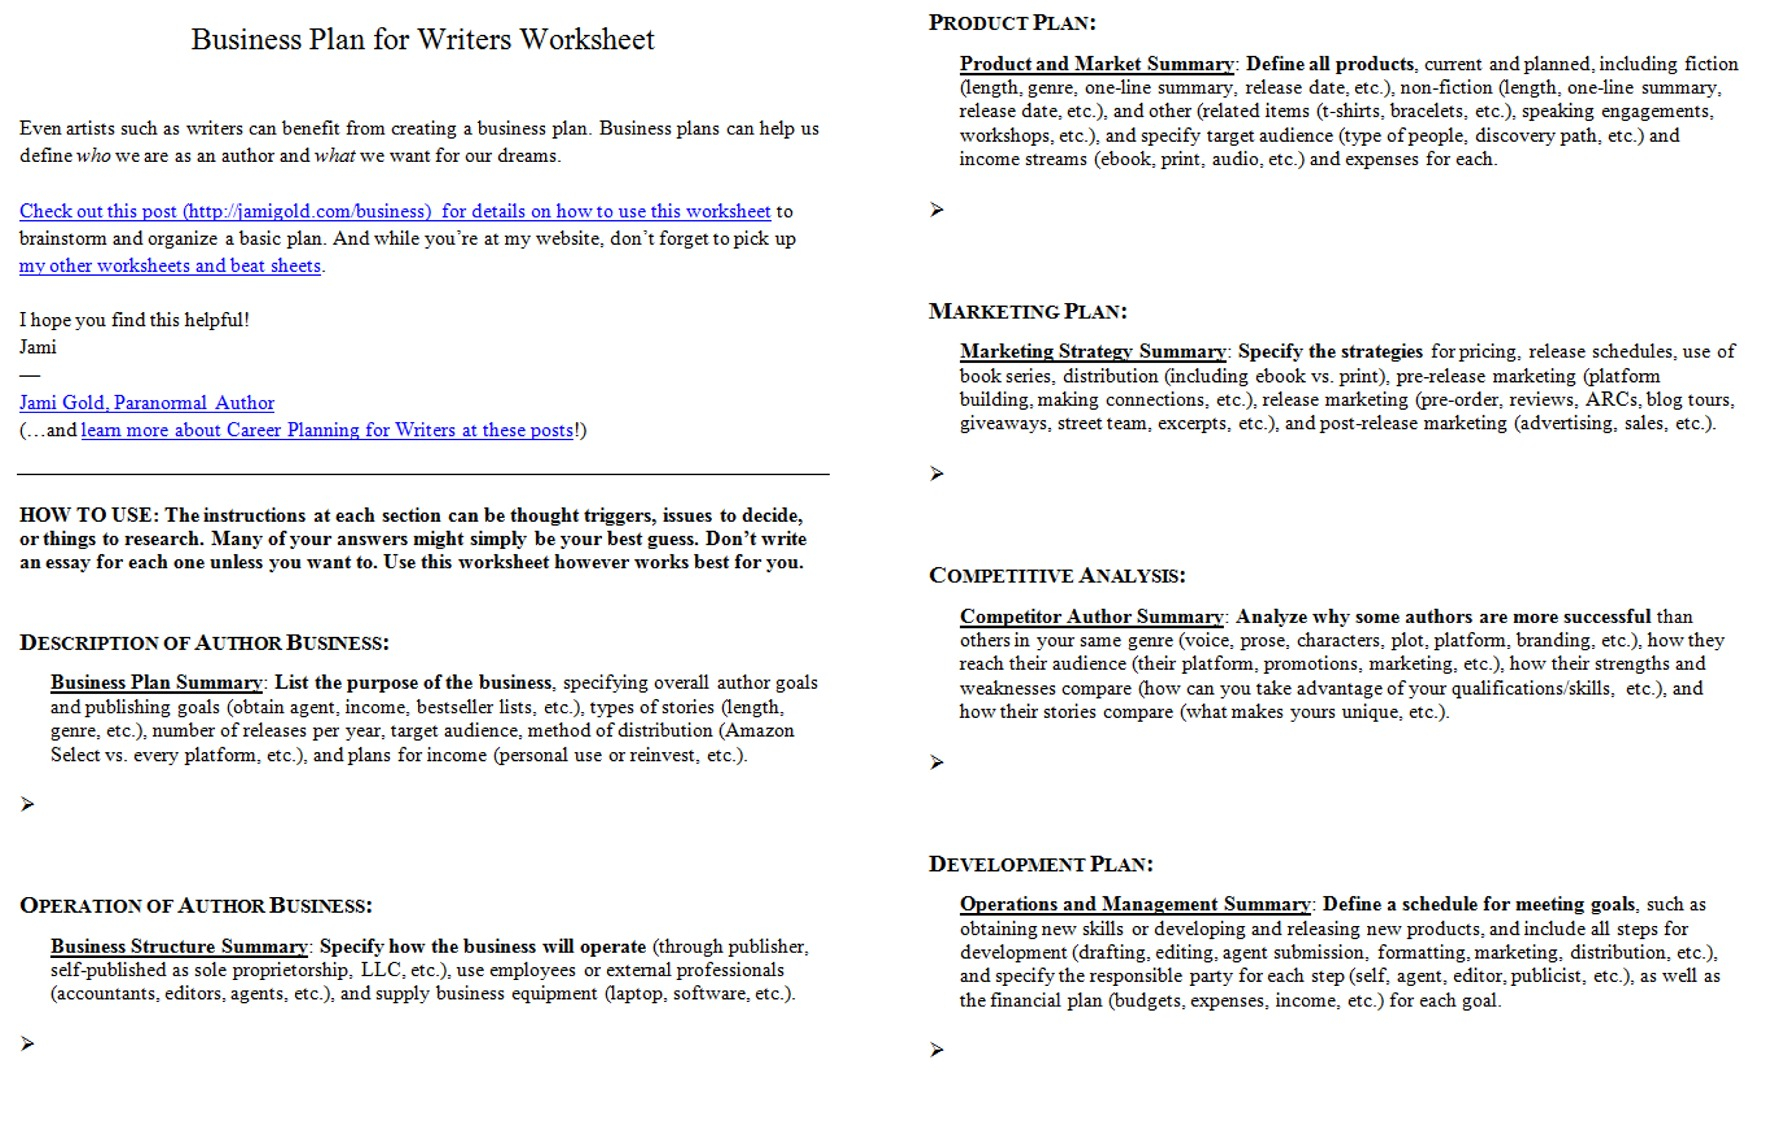 Weirdmailus  Marvellous Worksheets For Writers  Jami Gold Paranormal Author With Goodlooking Screen Shot Of Both Pages Of The Business Plan For Writers Worksheet With Adorable Ough Words Worksheet Also Ks Forces Worksheet In Addition Prepositions Worksheet For Grade  And Reading Clock Worksheets As Well As Free Comprehension Worksheets Ks Additionally Counting Worksheets For Kids From Jamigoldcom With Weirdmailus  Goodlooking Worksheets For Writers  Jami Gold Paranormal Author With Adorable Screen Shot Of Both Pages Of The Business Plan For Writers Worksheet And Marvellous Ough Words Worksheet Also Ks Forces Worksheet In Addition Prepositions Worksheet For Grade  From Jamigoldcom